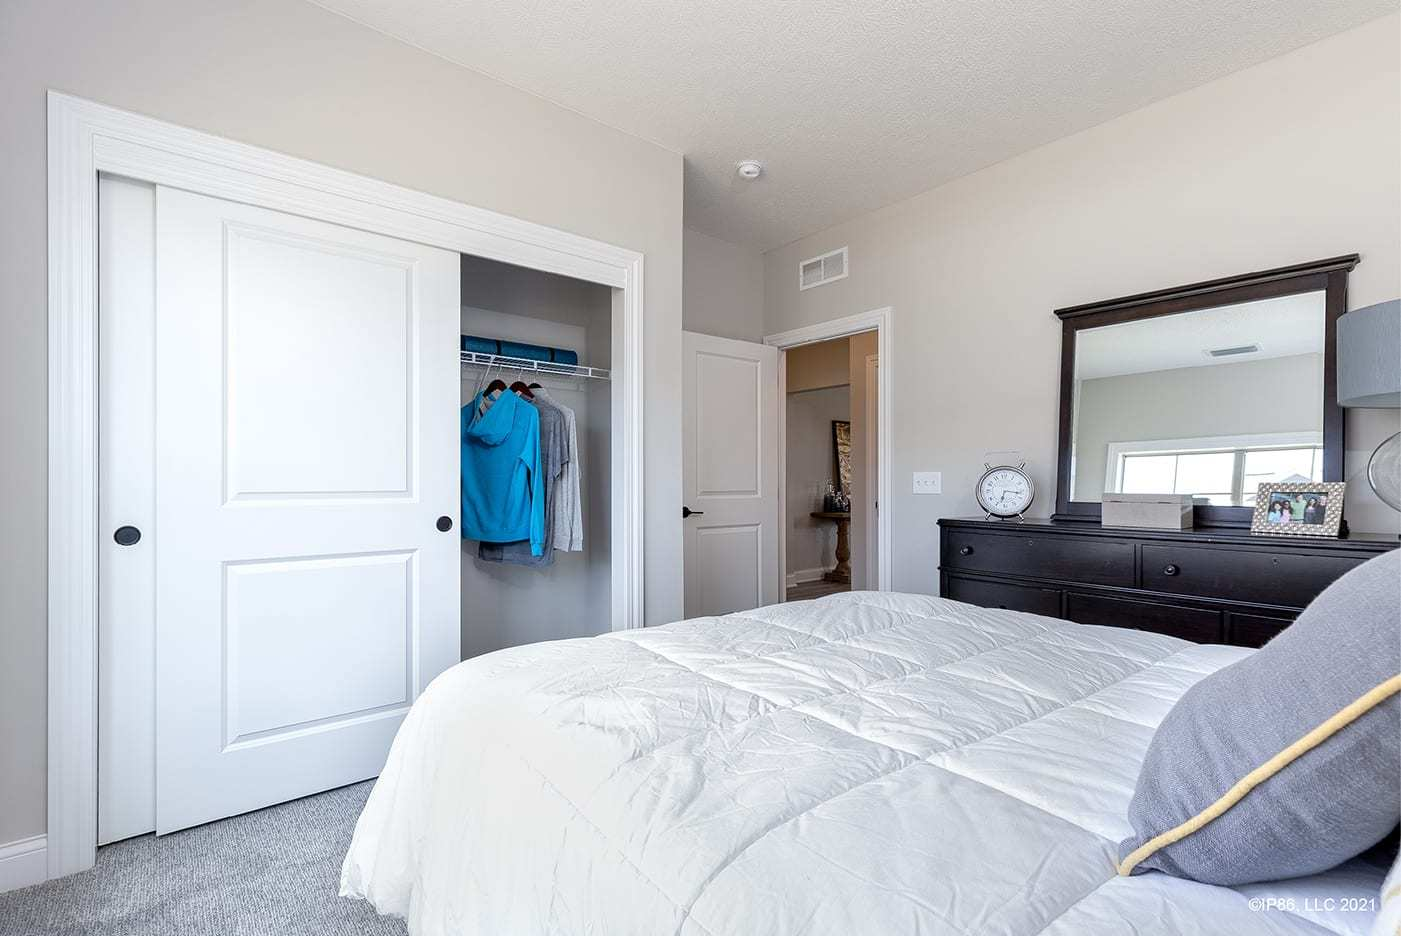 Bedroom featured in the Capri IV By Epcon Communities in Columbus, OH